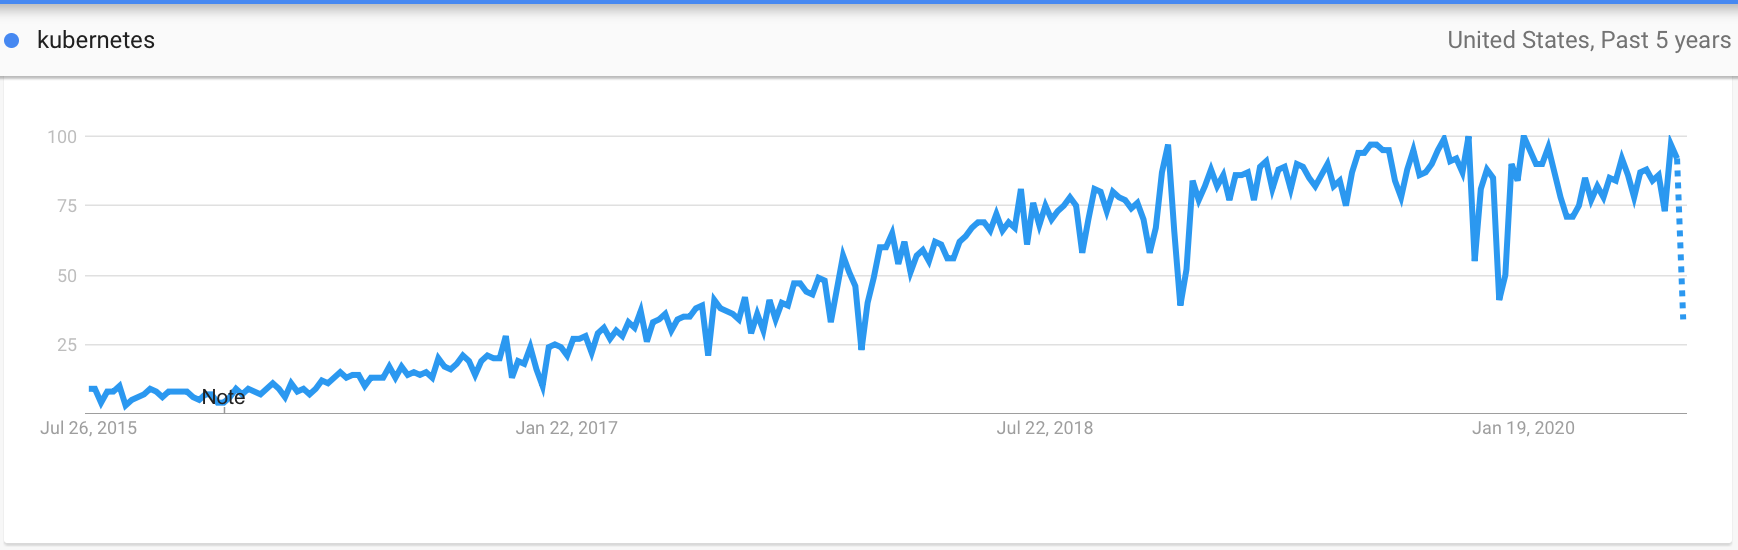 kubernetes trends